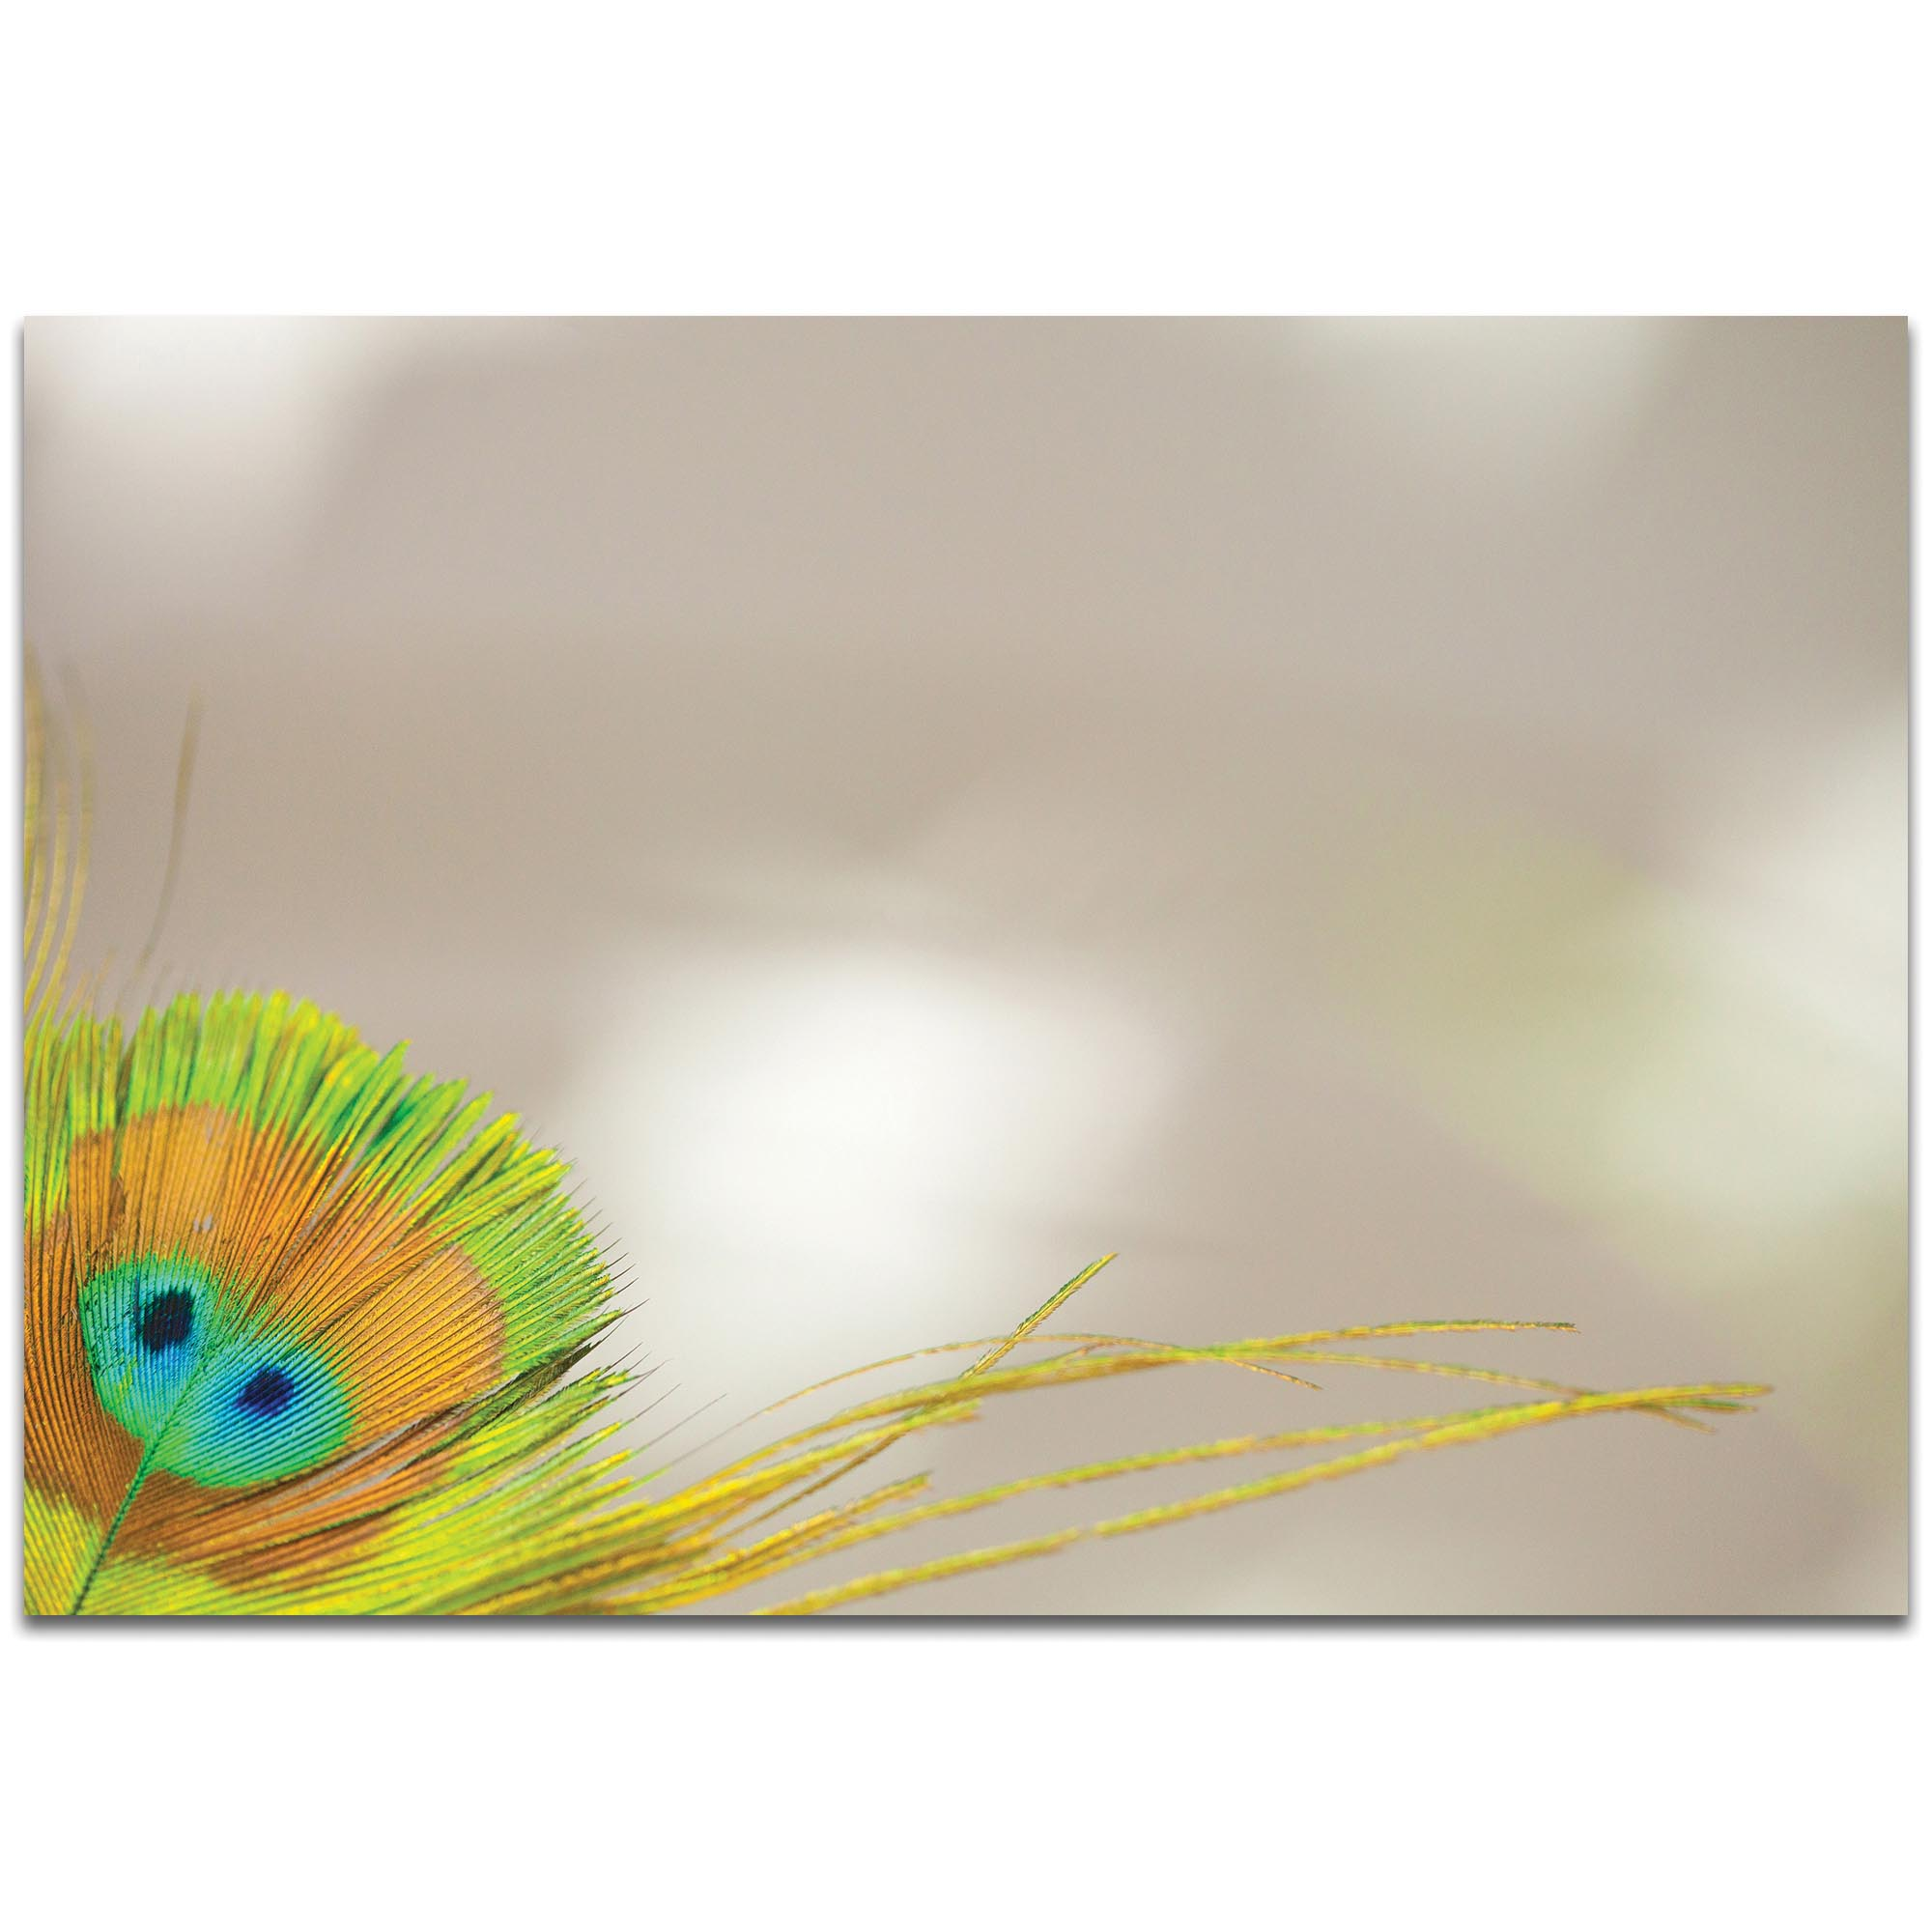 Contemporary Wall Art 'Peacock Corner' - Wildlife Decor on Metal or Plexiglass